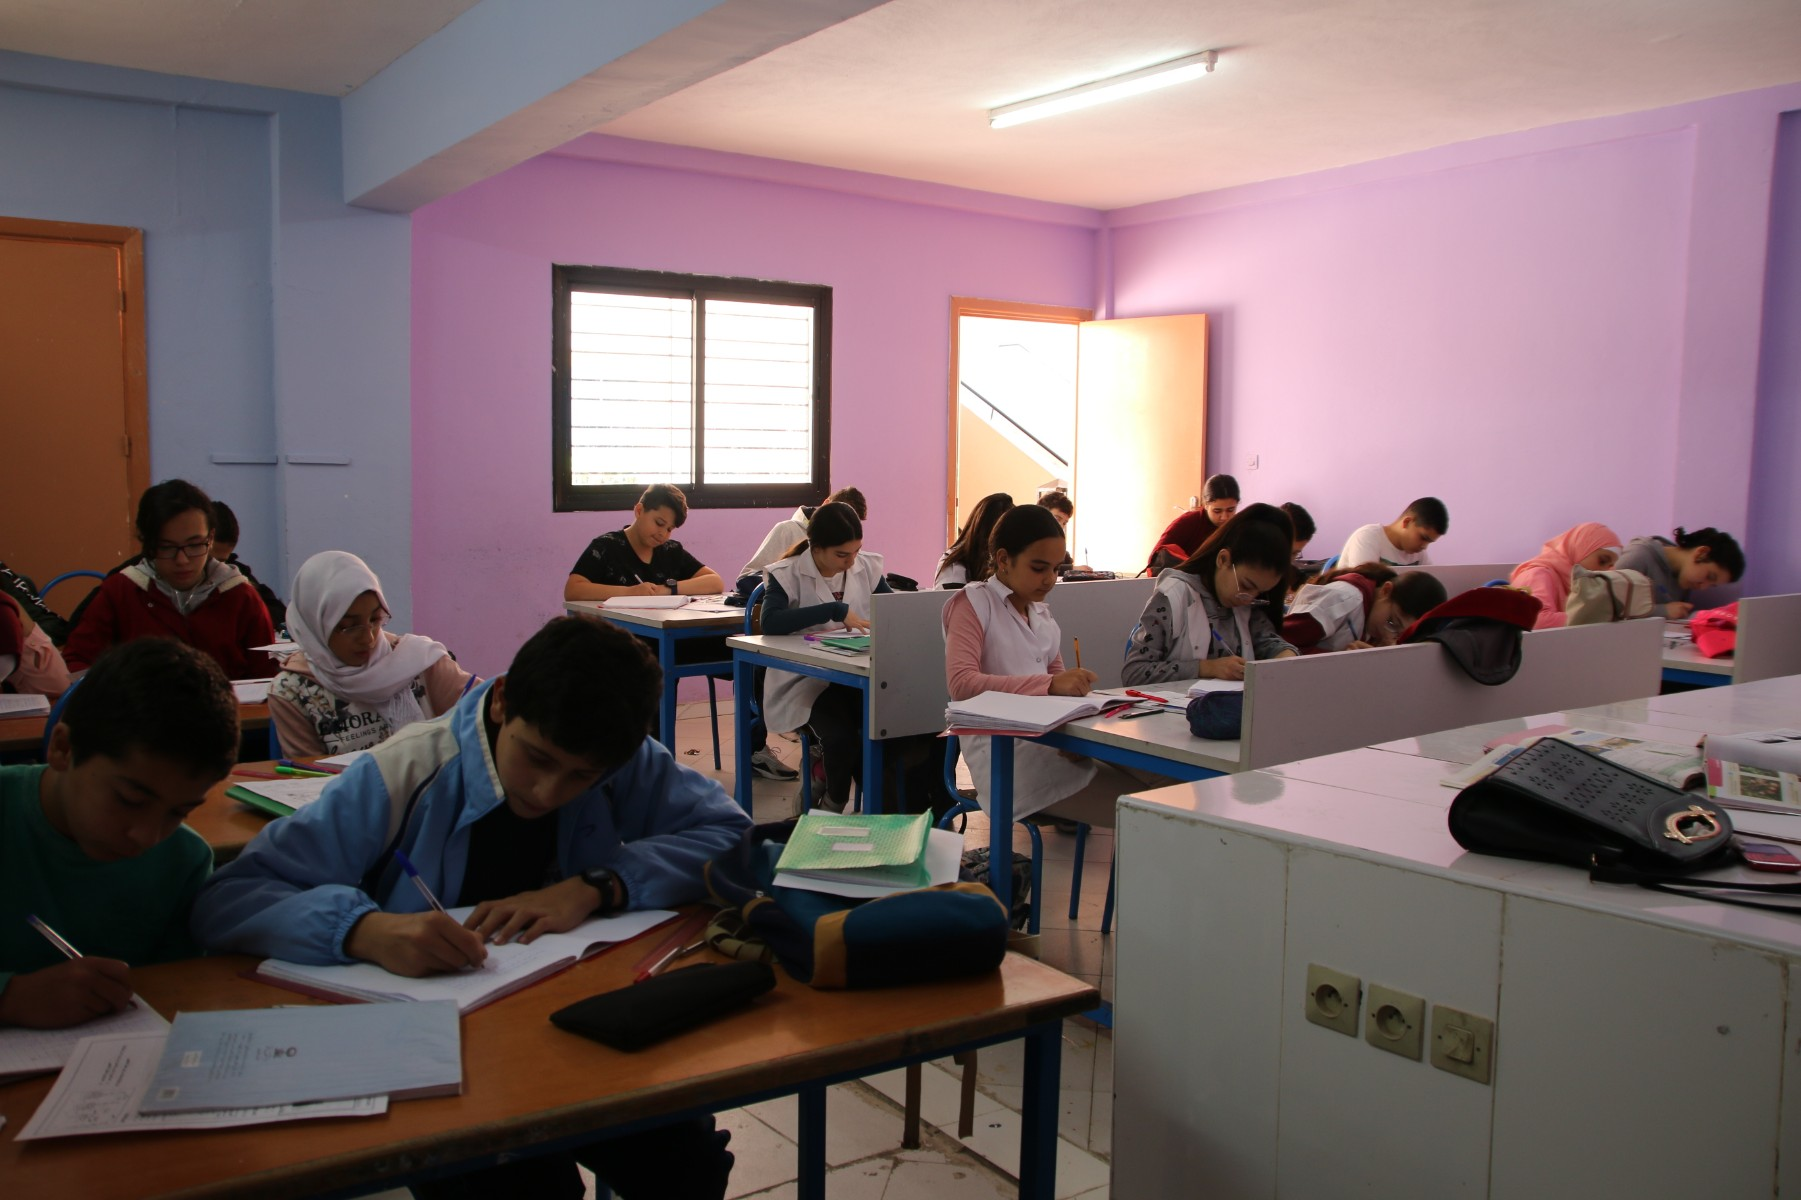 Groupe scolaire Al Mourchid Collège Oujda